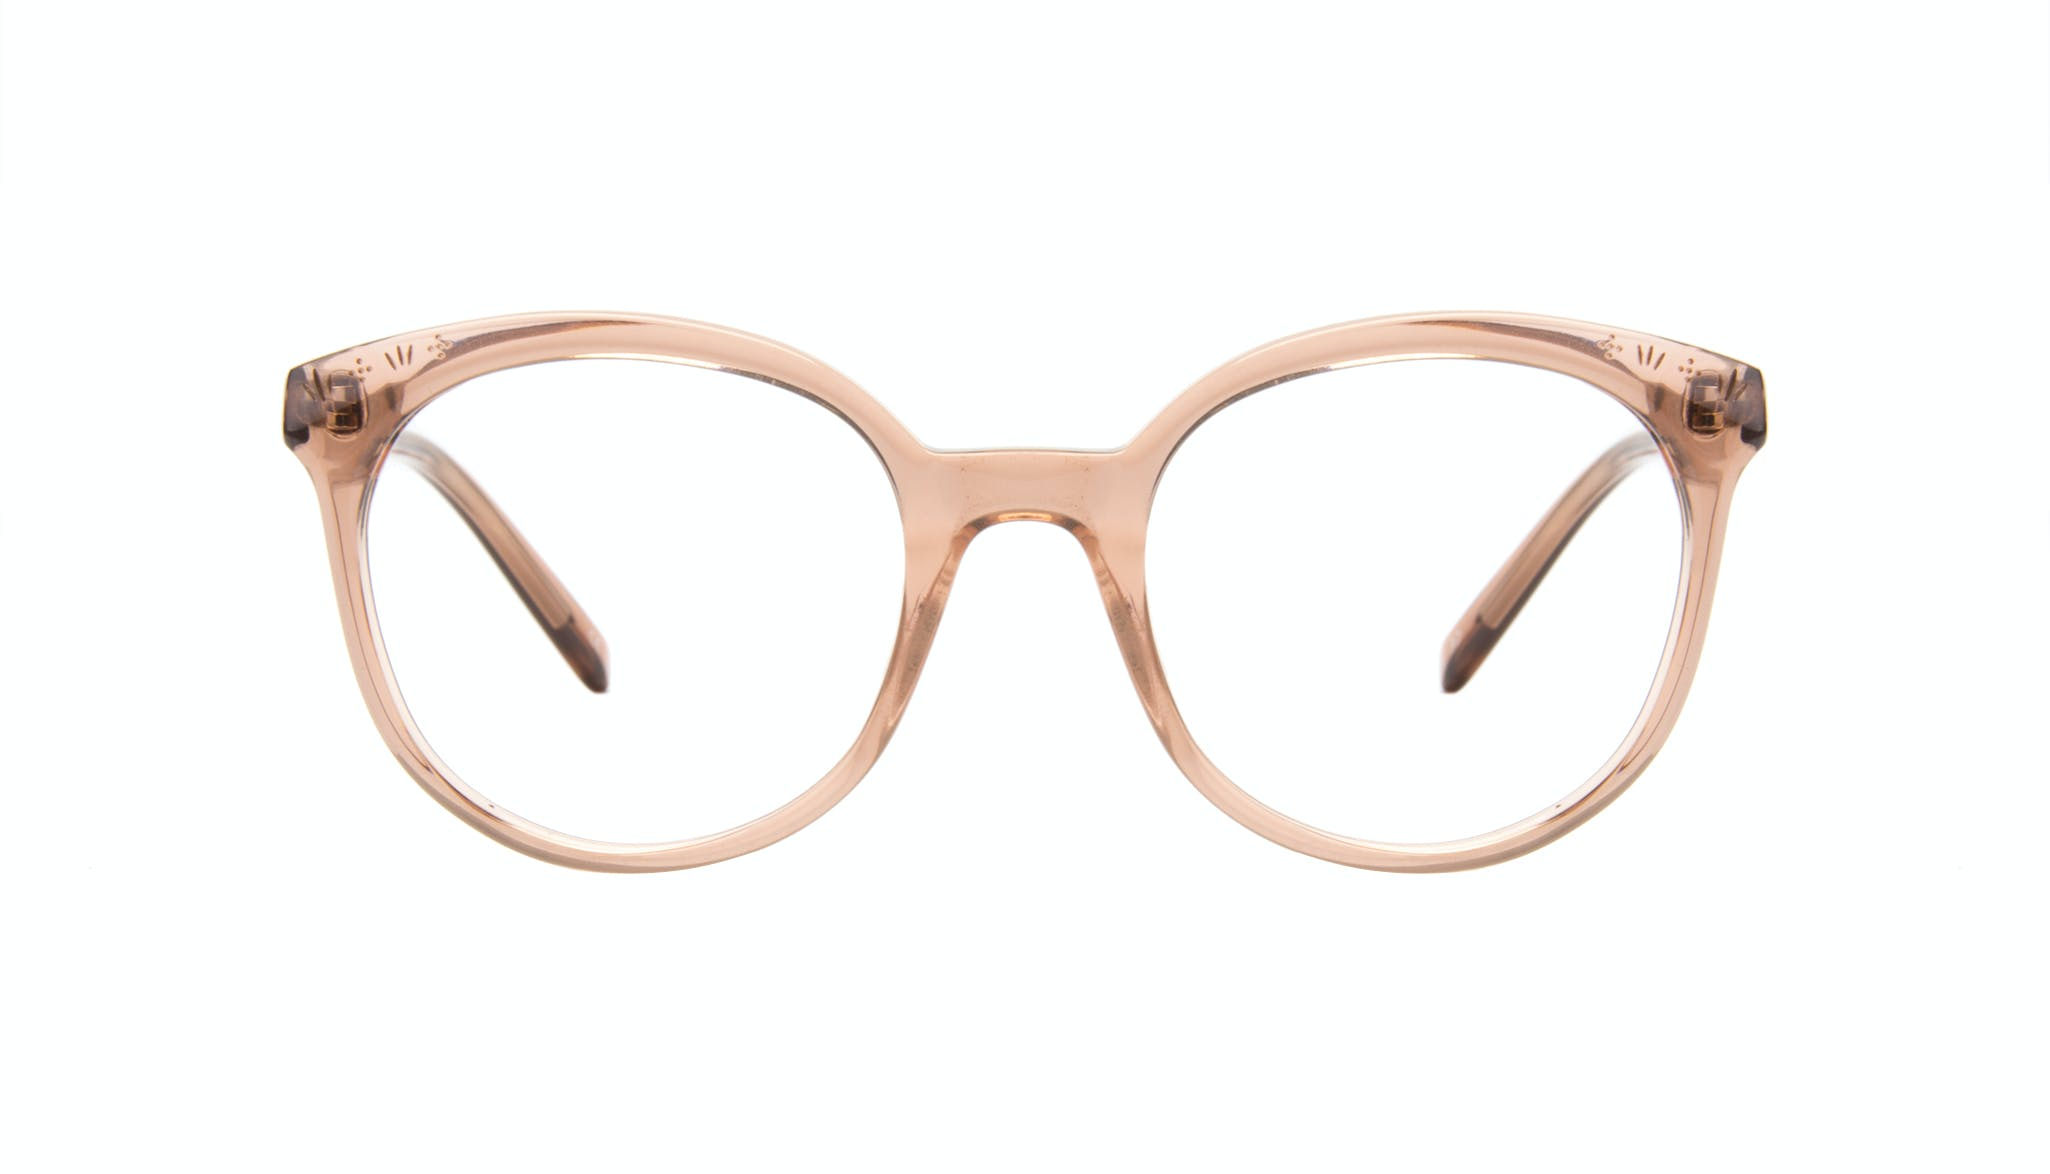 Affordable Fashion Glasses Round Eyeglasses Women Must Rose